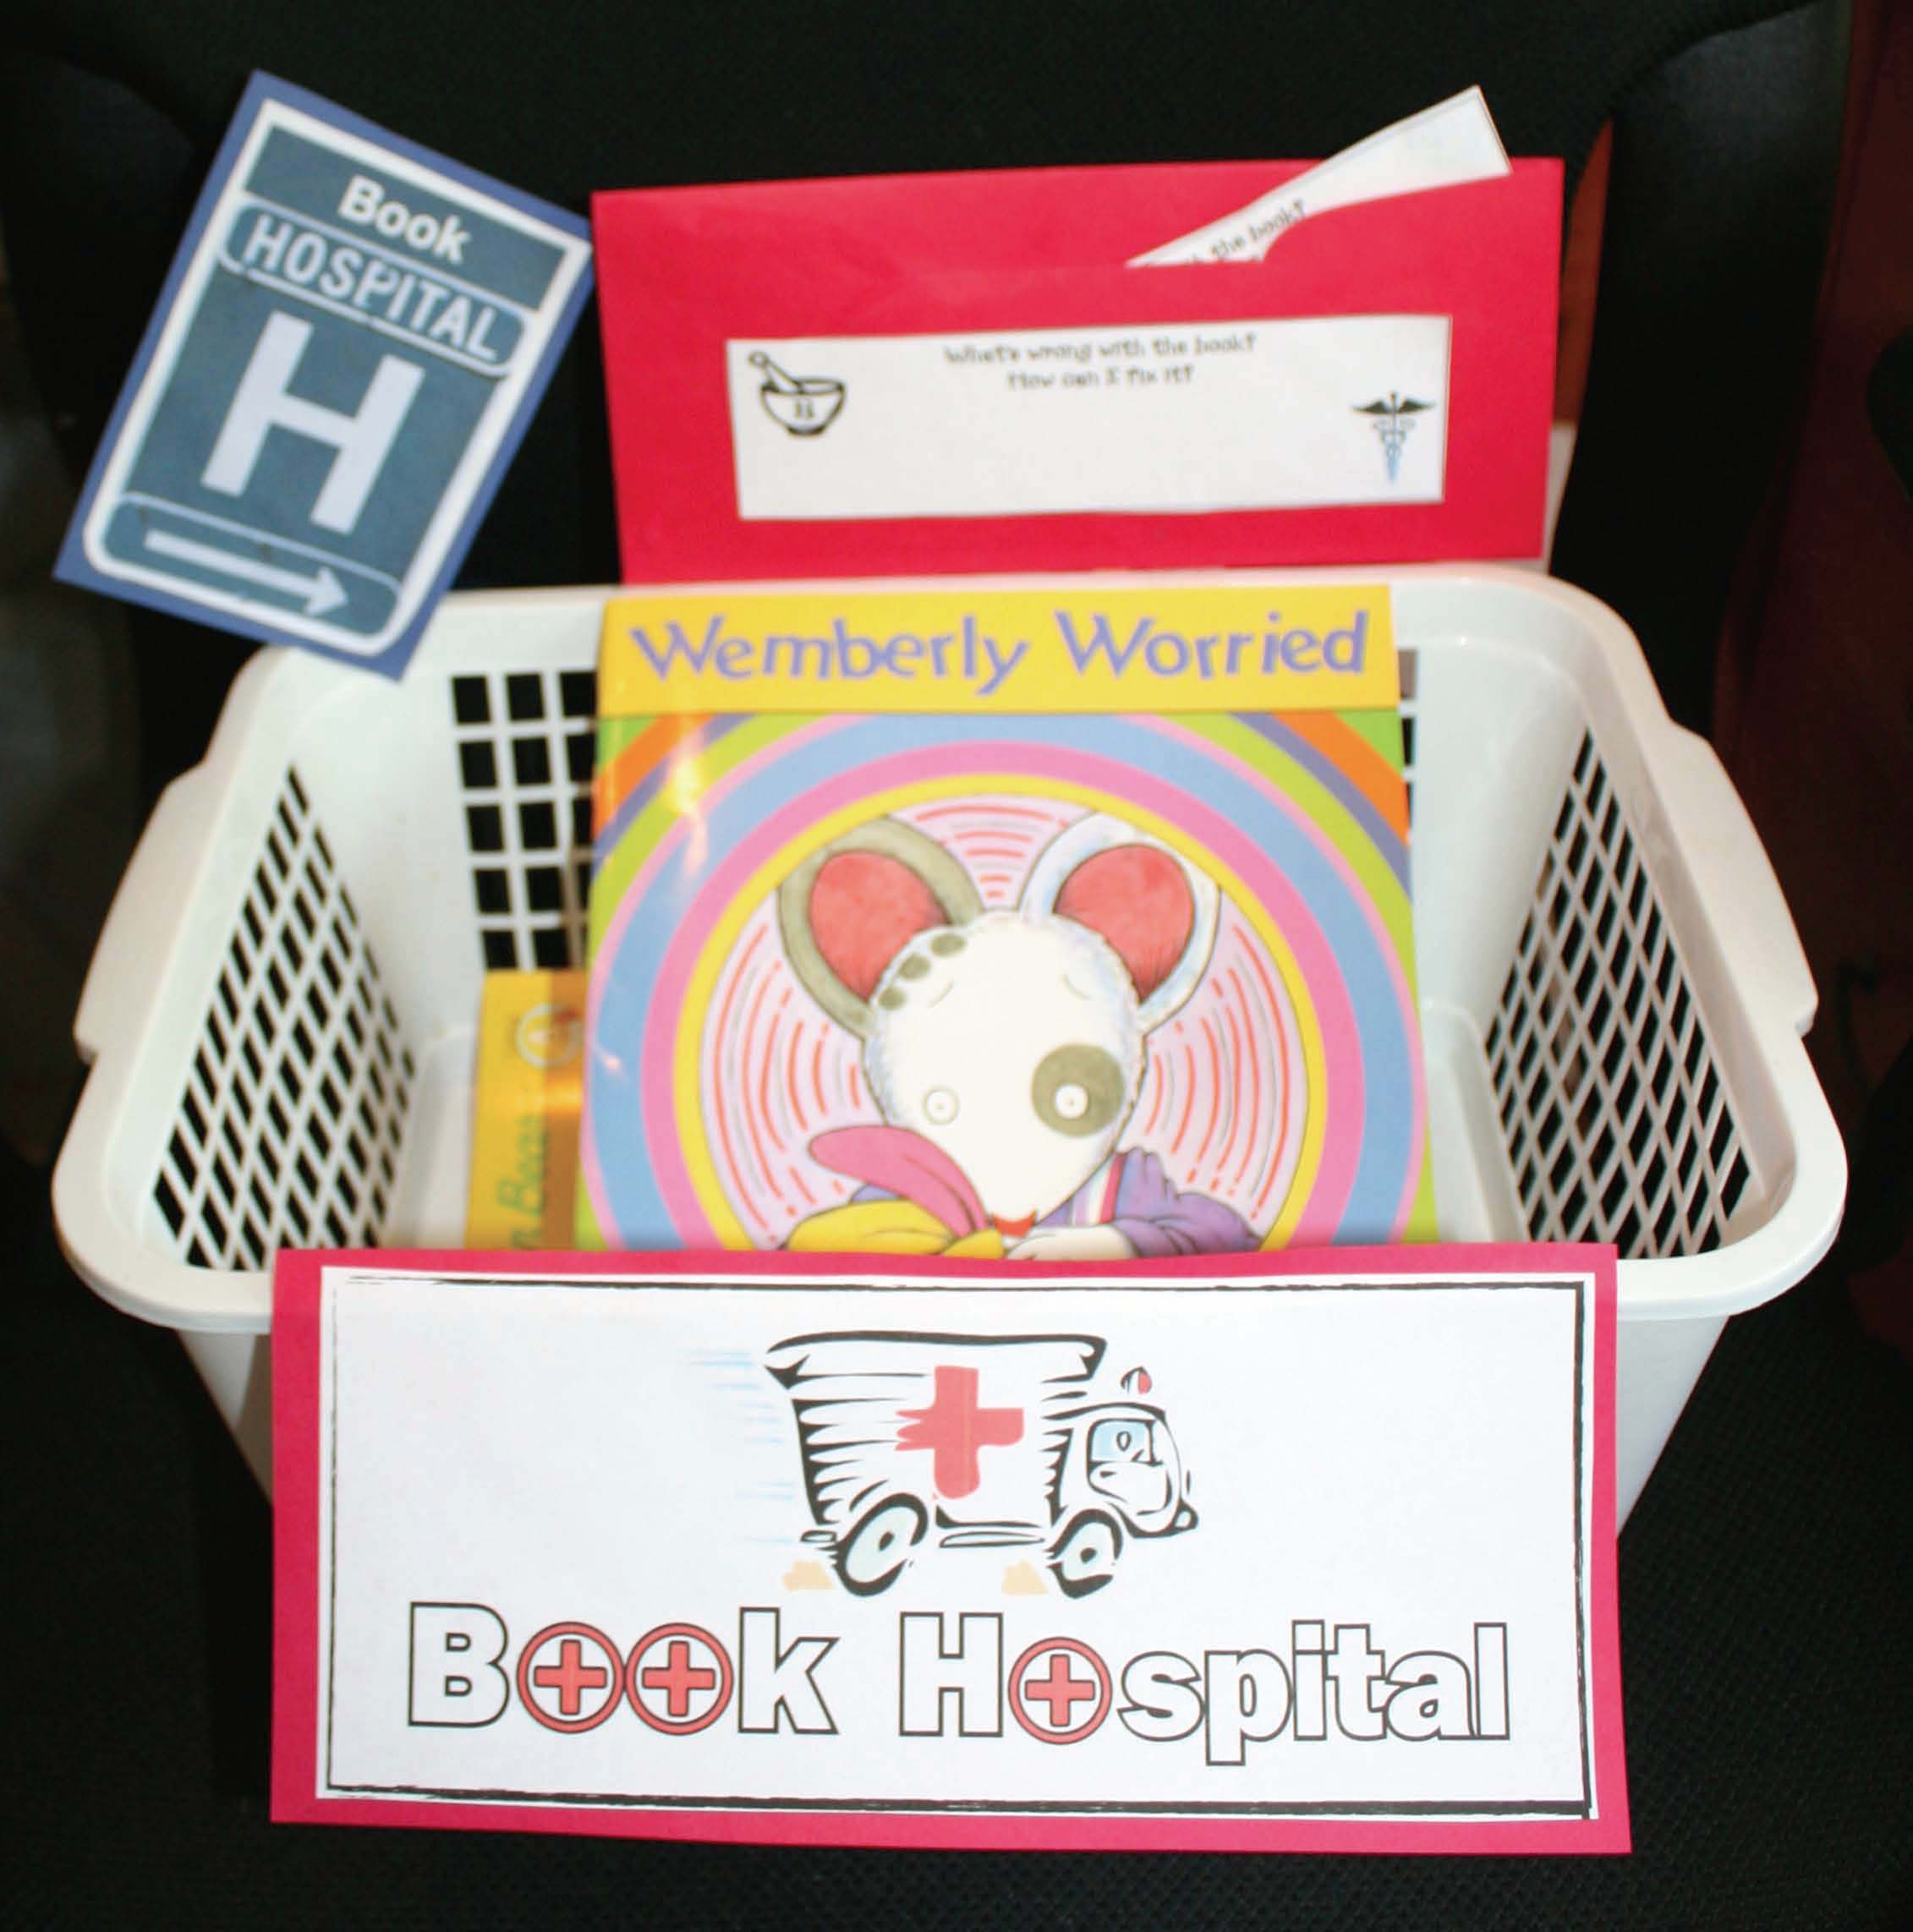 classroom organization, classroom tips, classroom management ideas, classroom decorating ideas, book baskets, back to school ideas, book hospital basket, book hospital signs